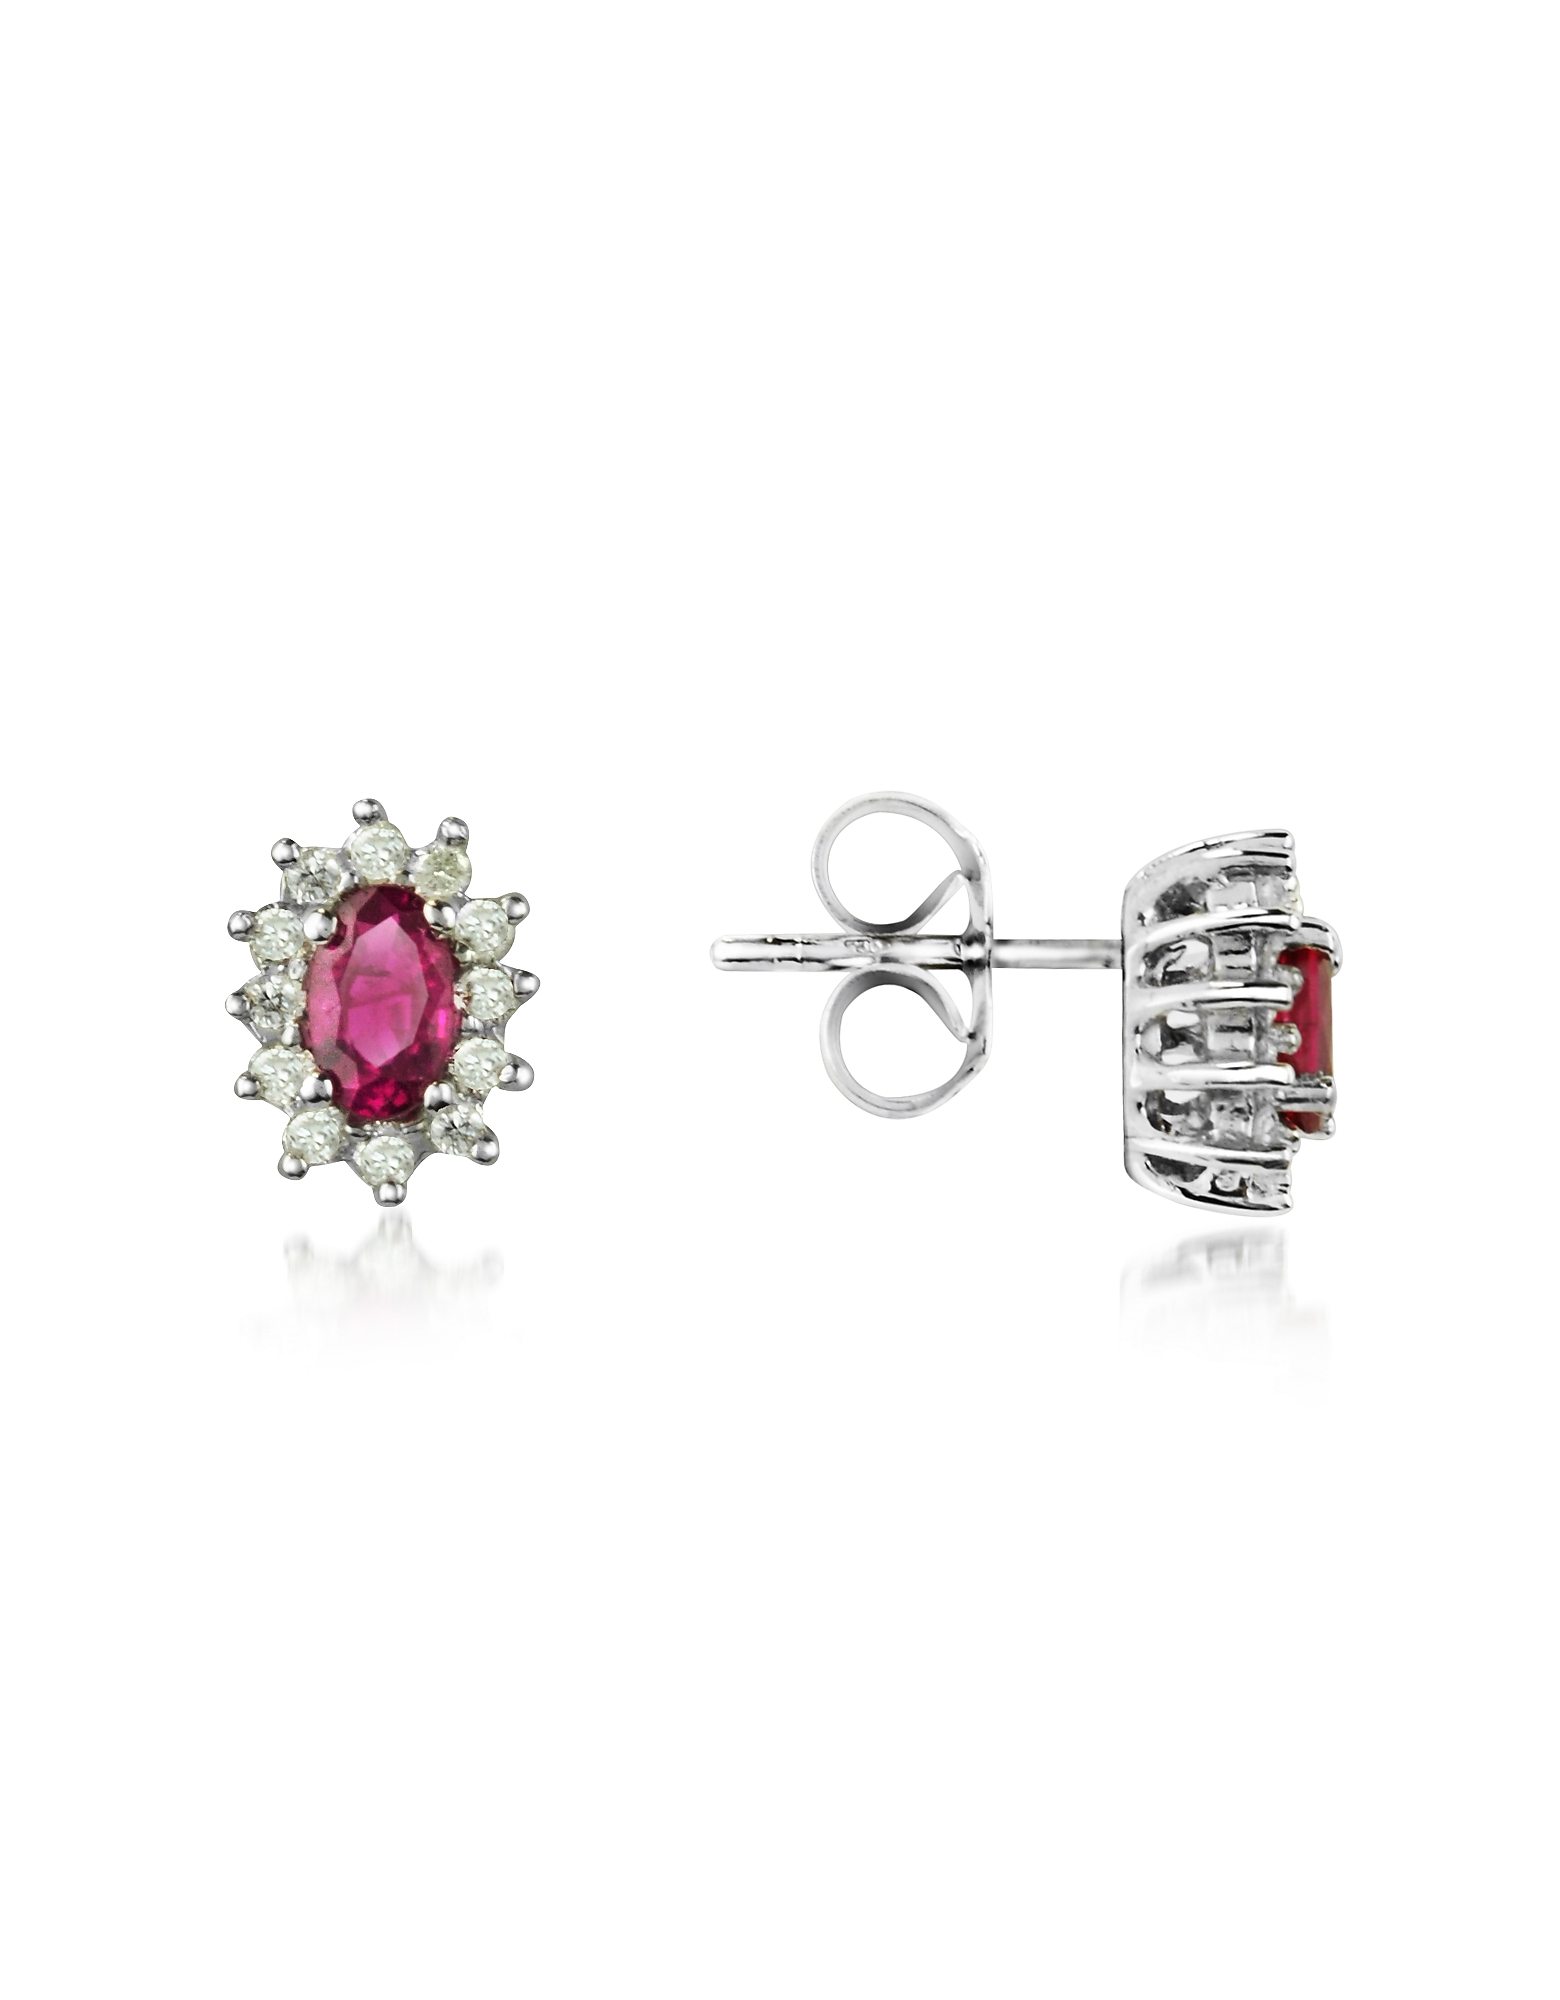 Incanto Royale Earrings, Ruby and Diamond 18K Gold Earrings